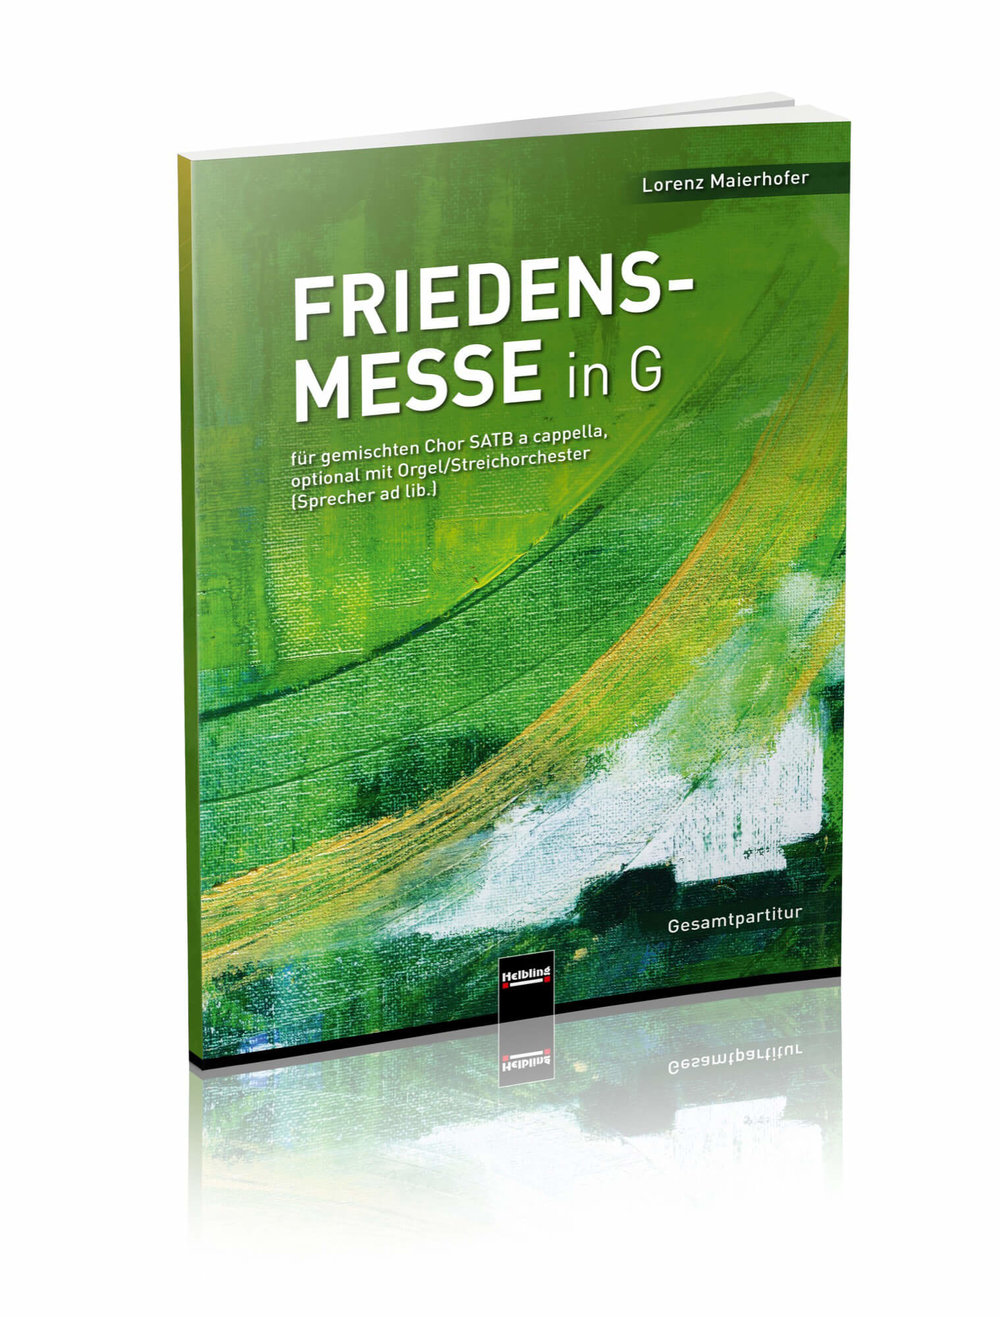 ▸ FRIEDENSMESSE IN G